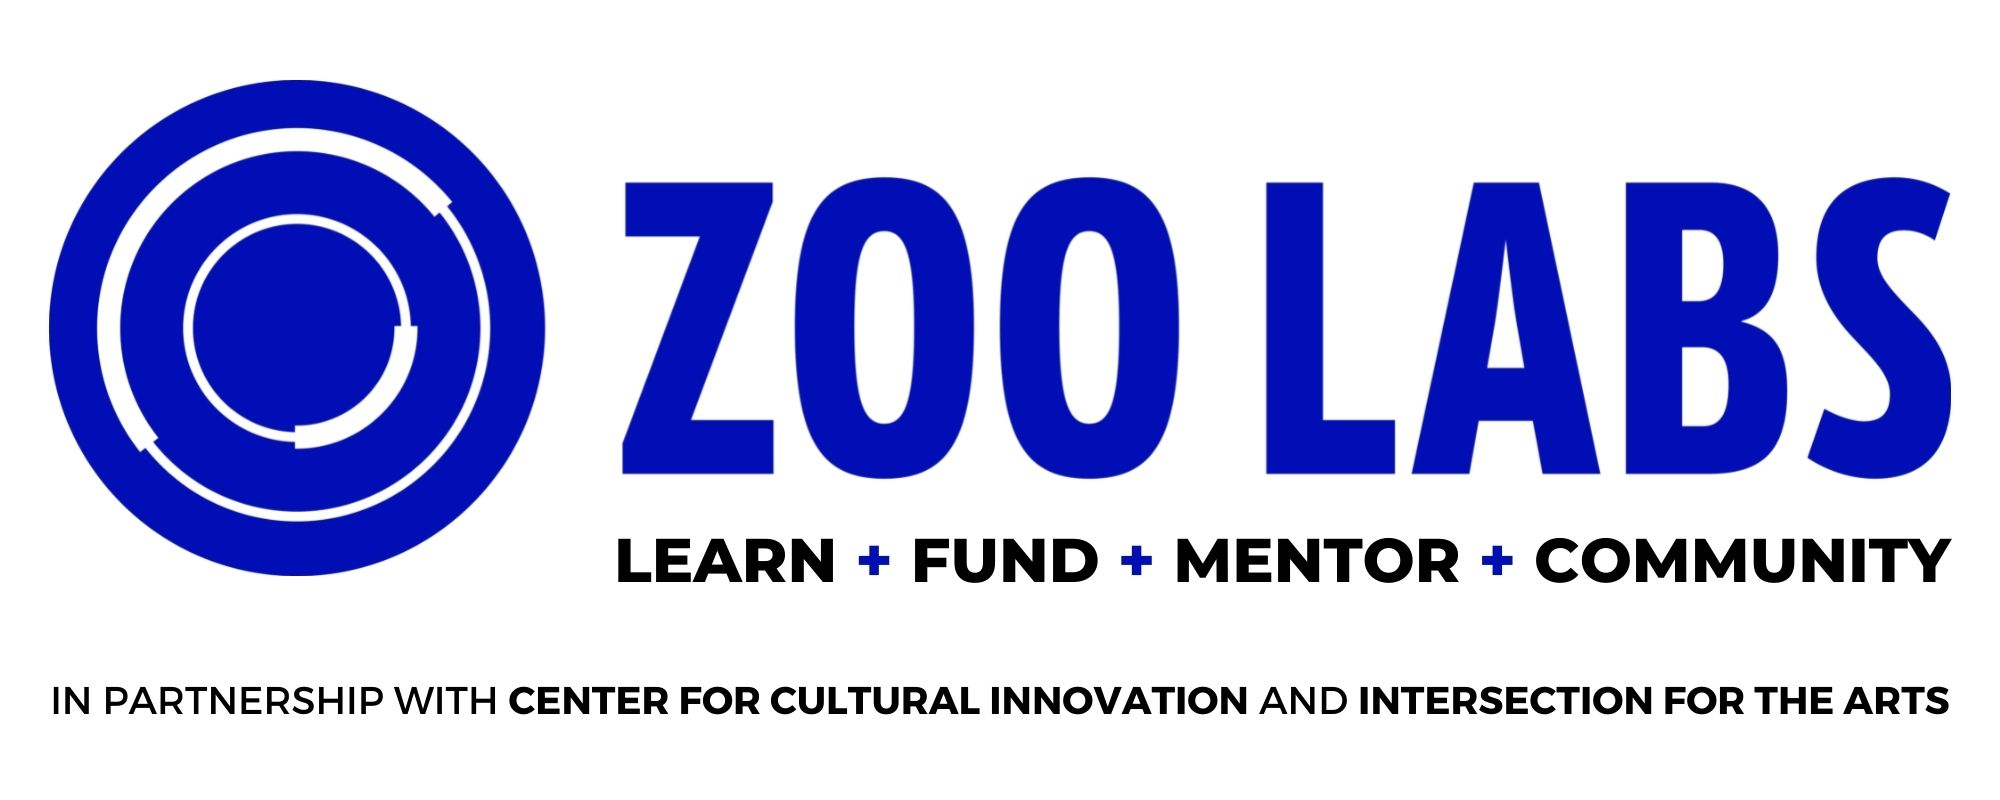 images/Zoo Labs Logo